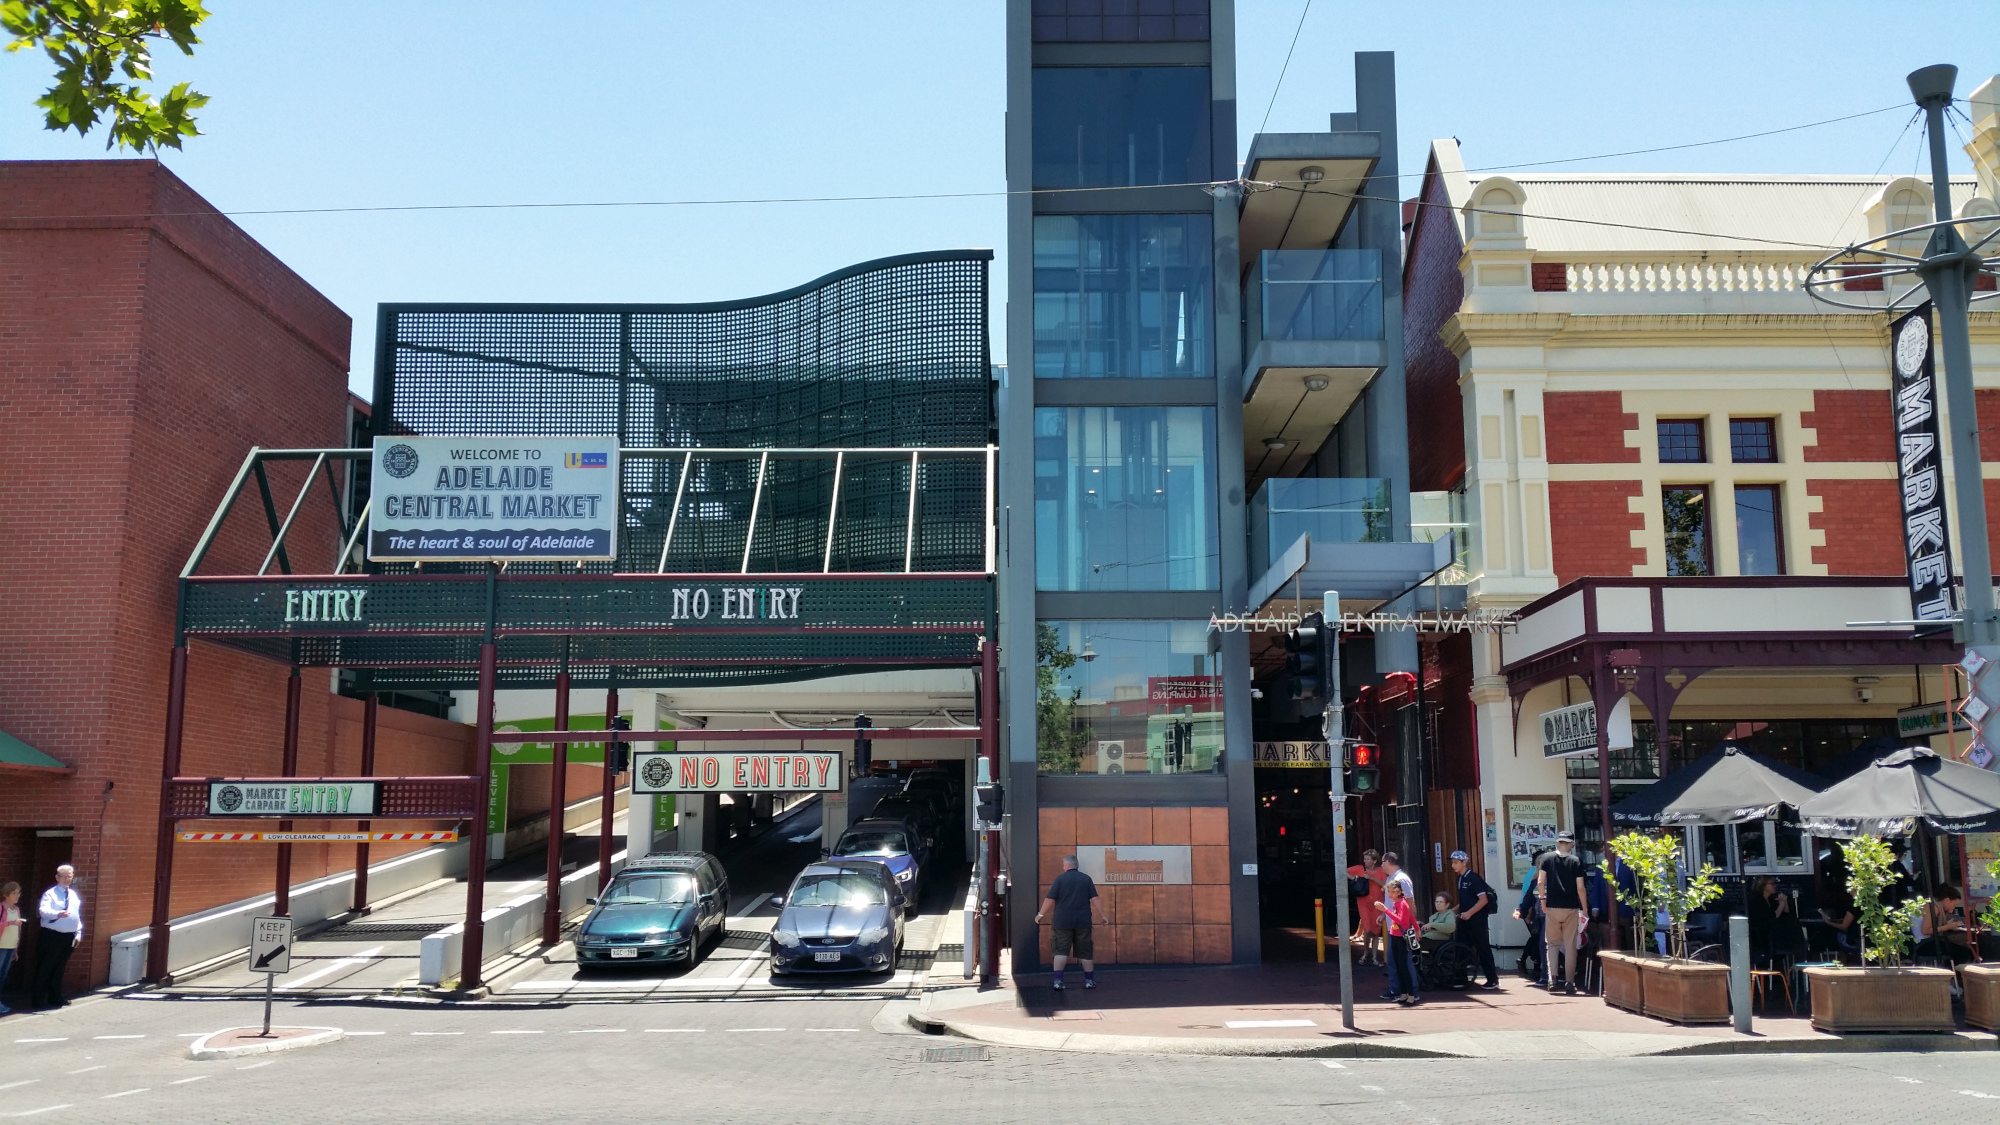 Adelaide Central Markets – Property Services Asset Management Plan